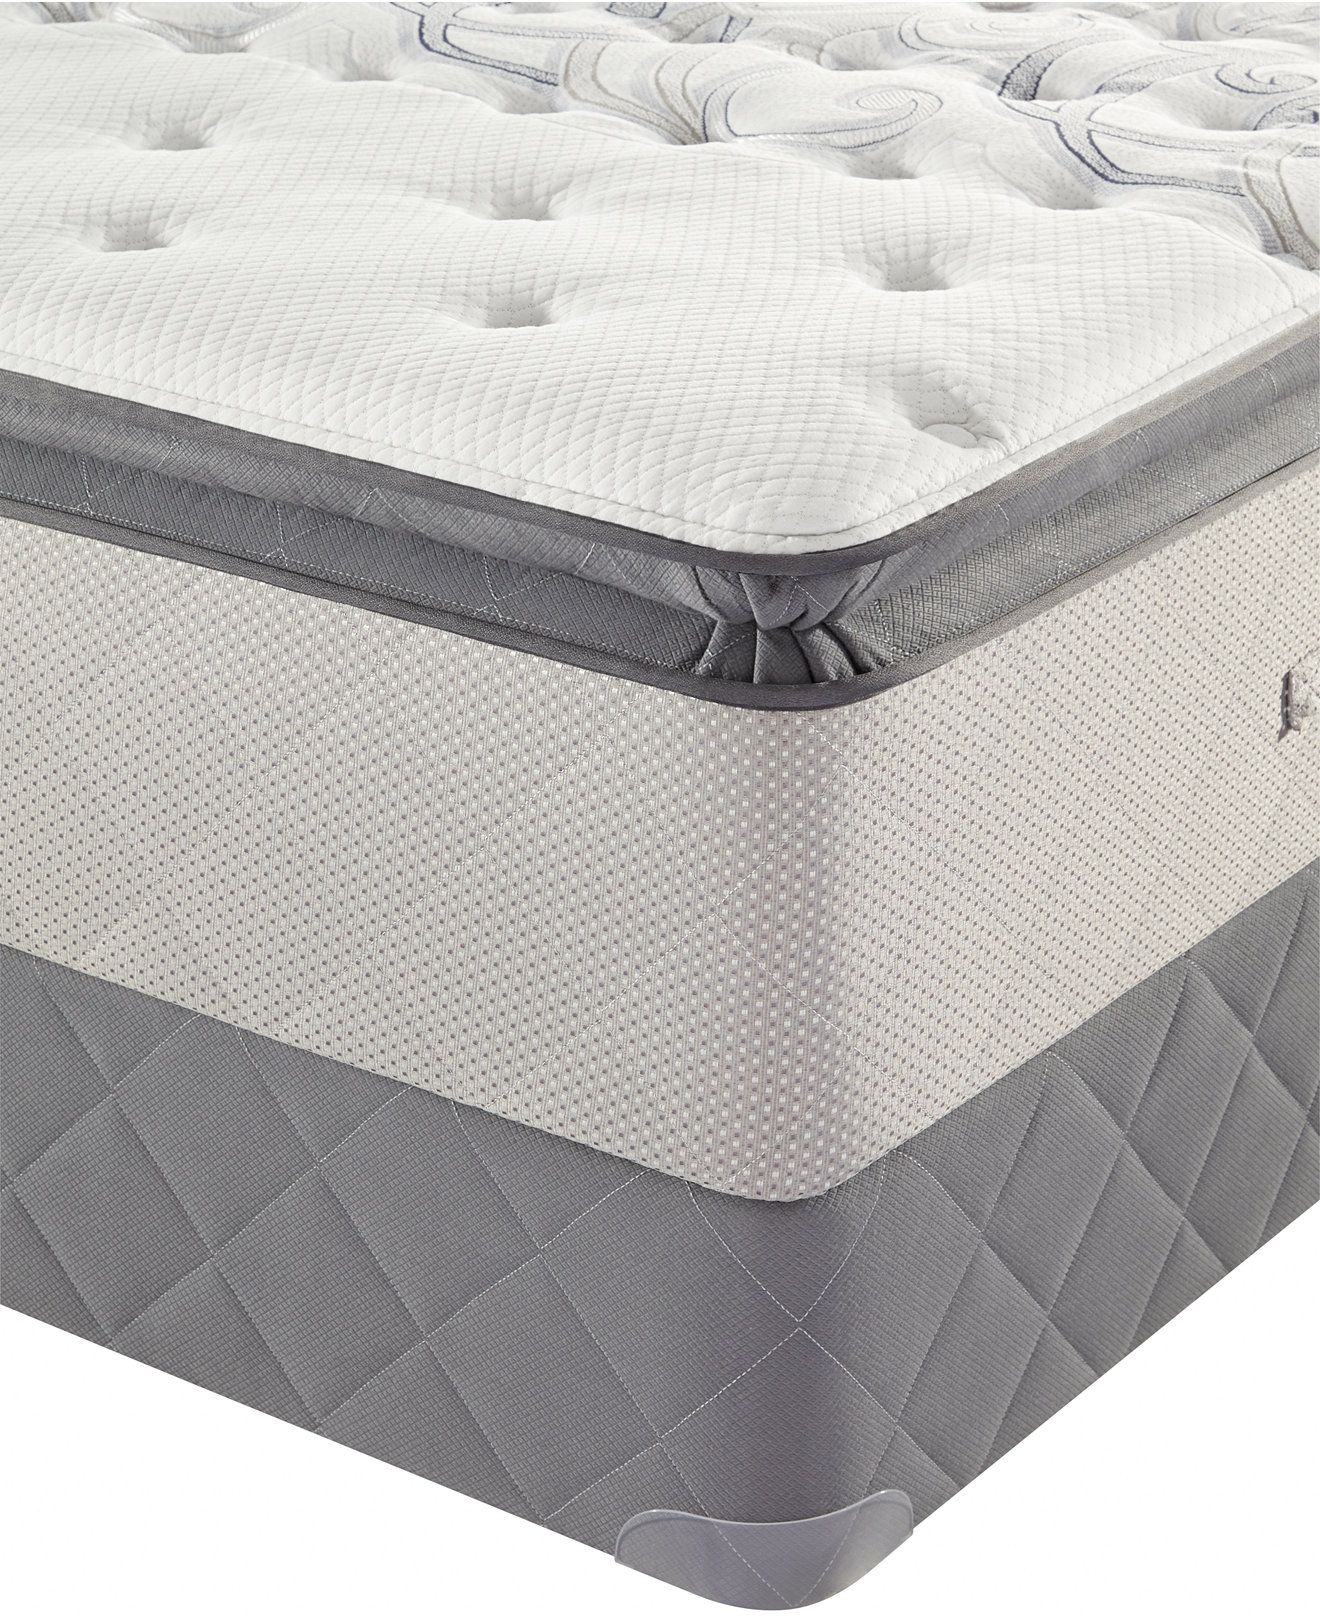 mattress beds display kids simmons jcpenney furniture bedrooms bedroom bunk mattresses baby